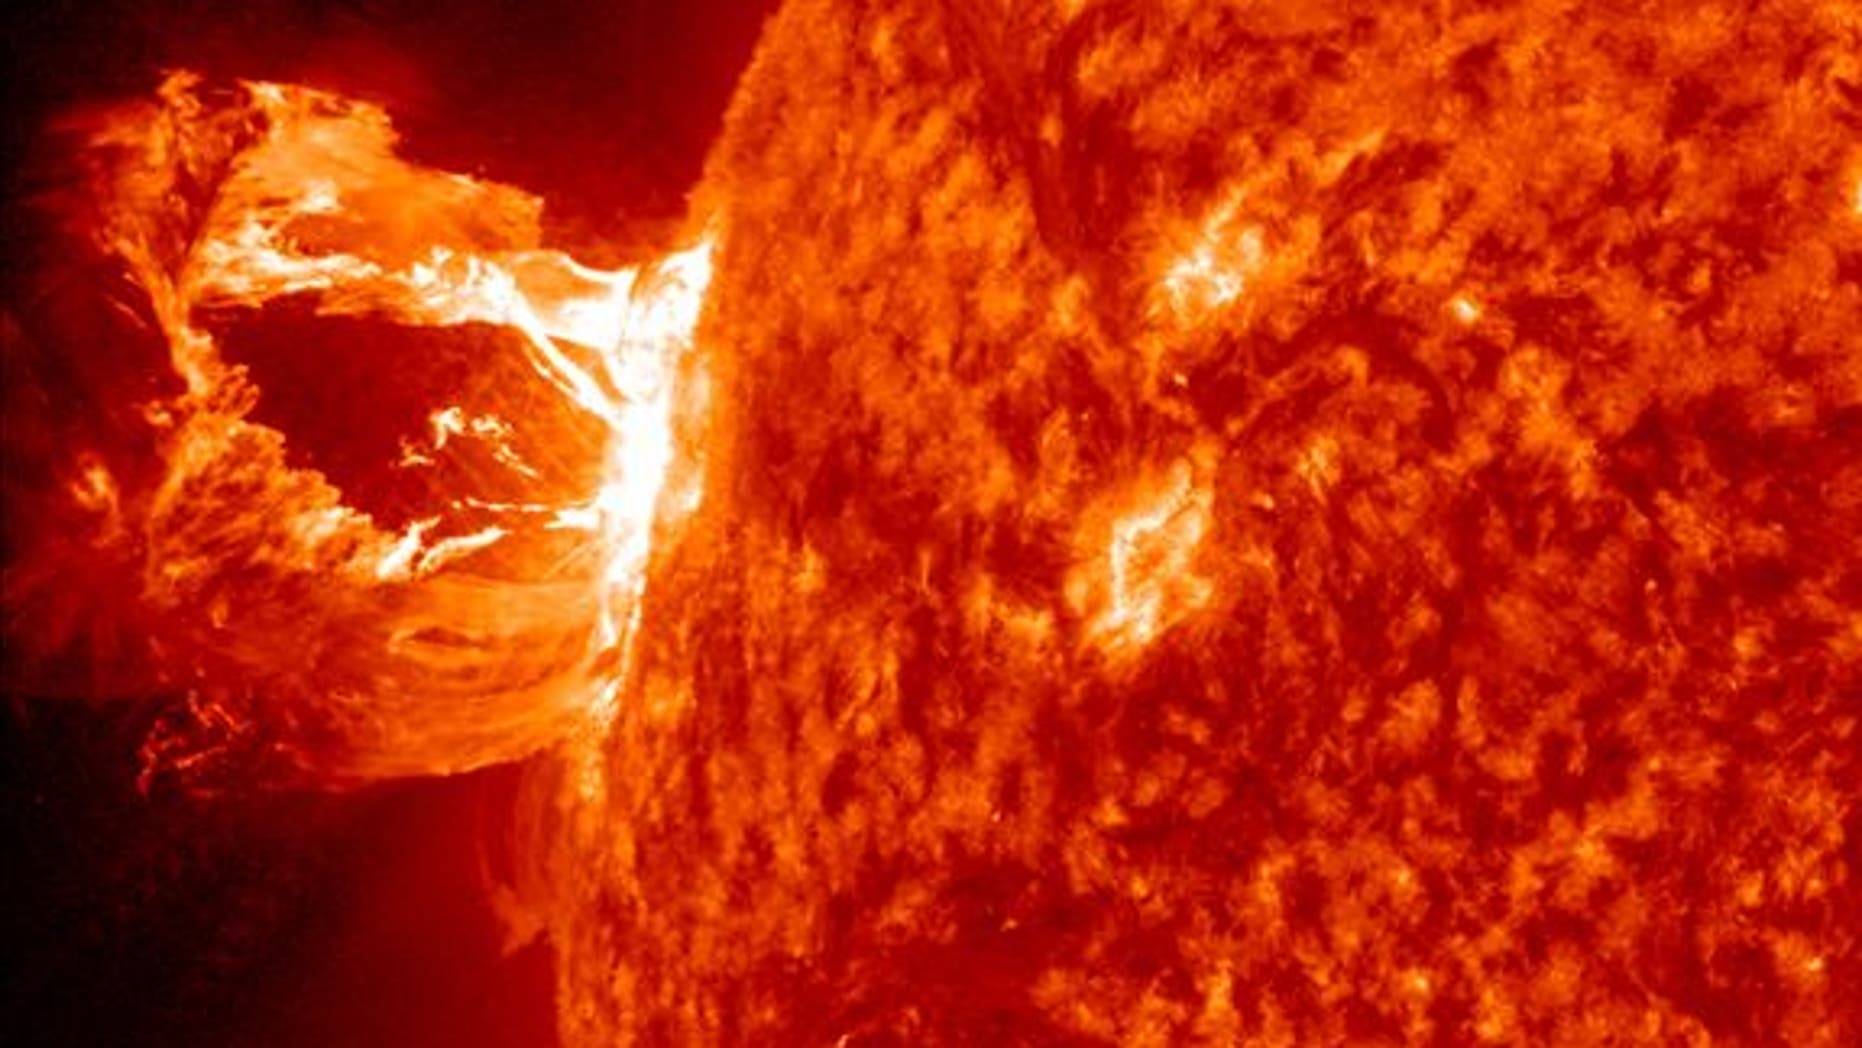 April 16, 2012: A beautiful solar prominence erupts off the east limb (left side) of the sun. This view of the flare was recorded by NASA's Solar Dynamics Observatory.